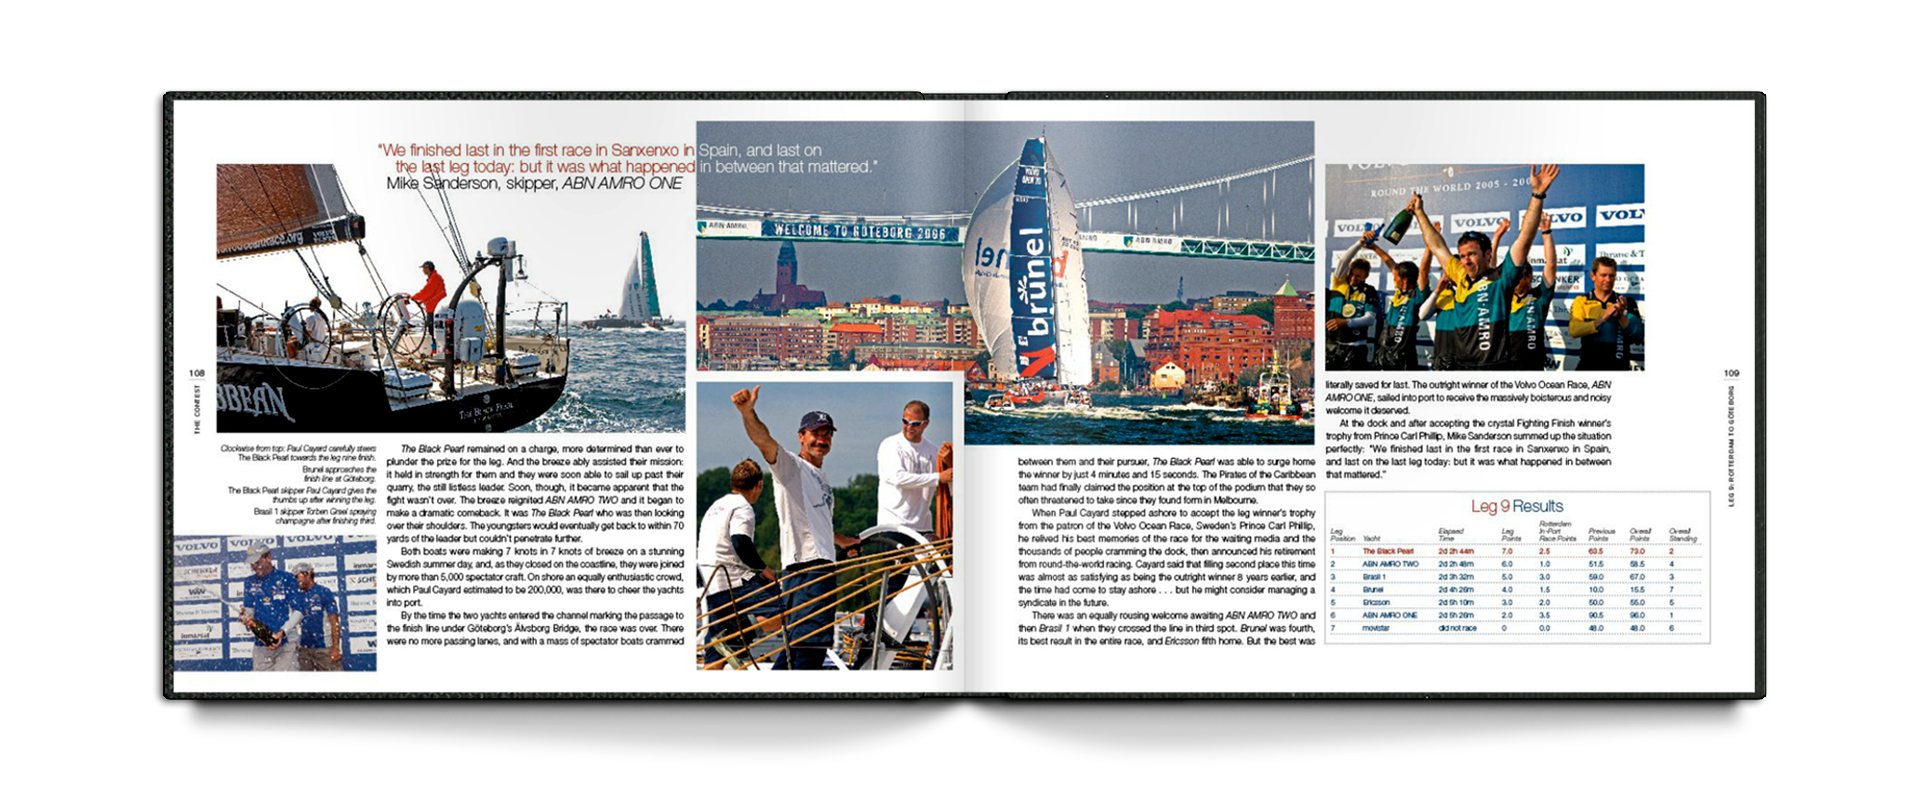 spread from the Volvo life at the extreme book with a collage of race photos